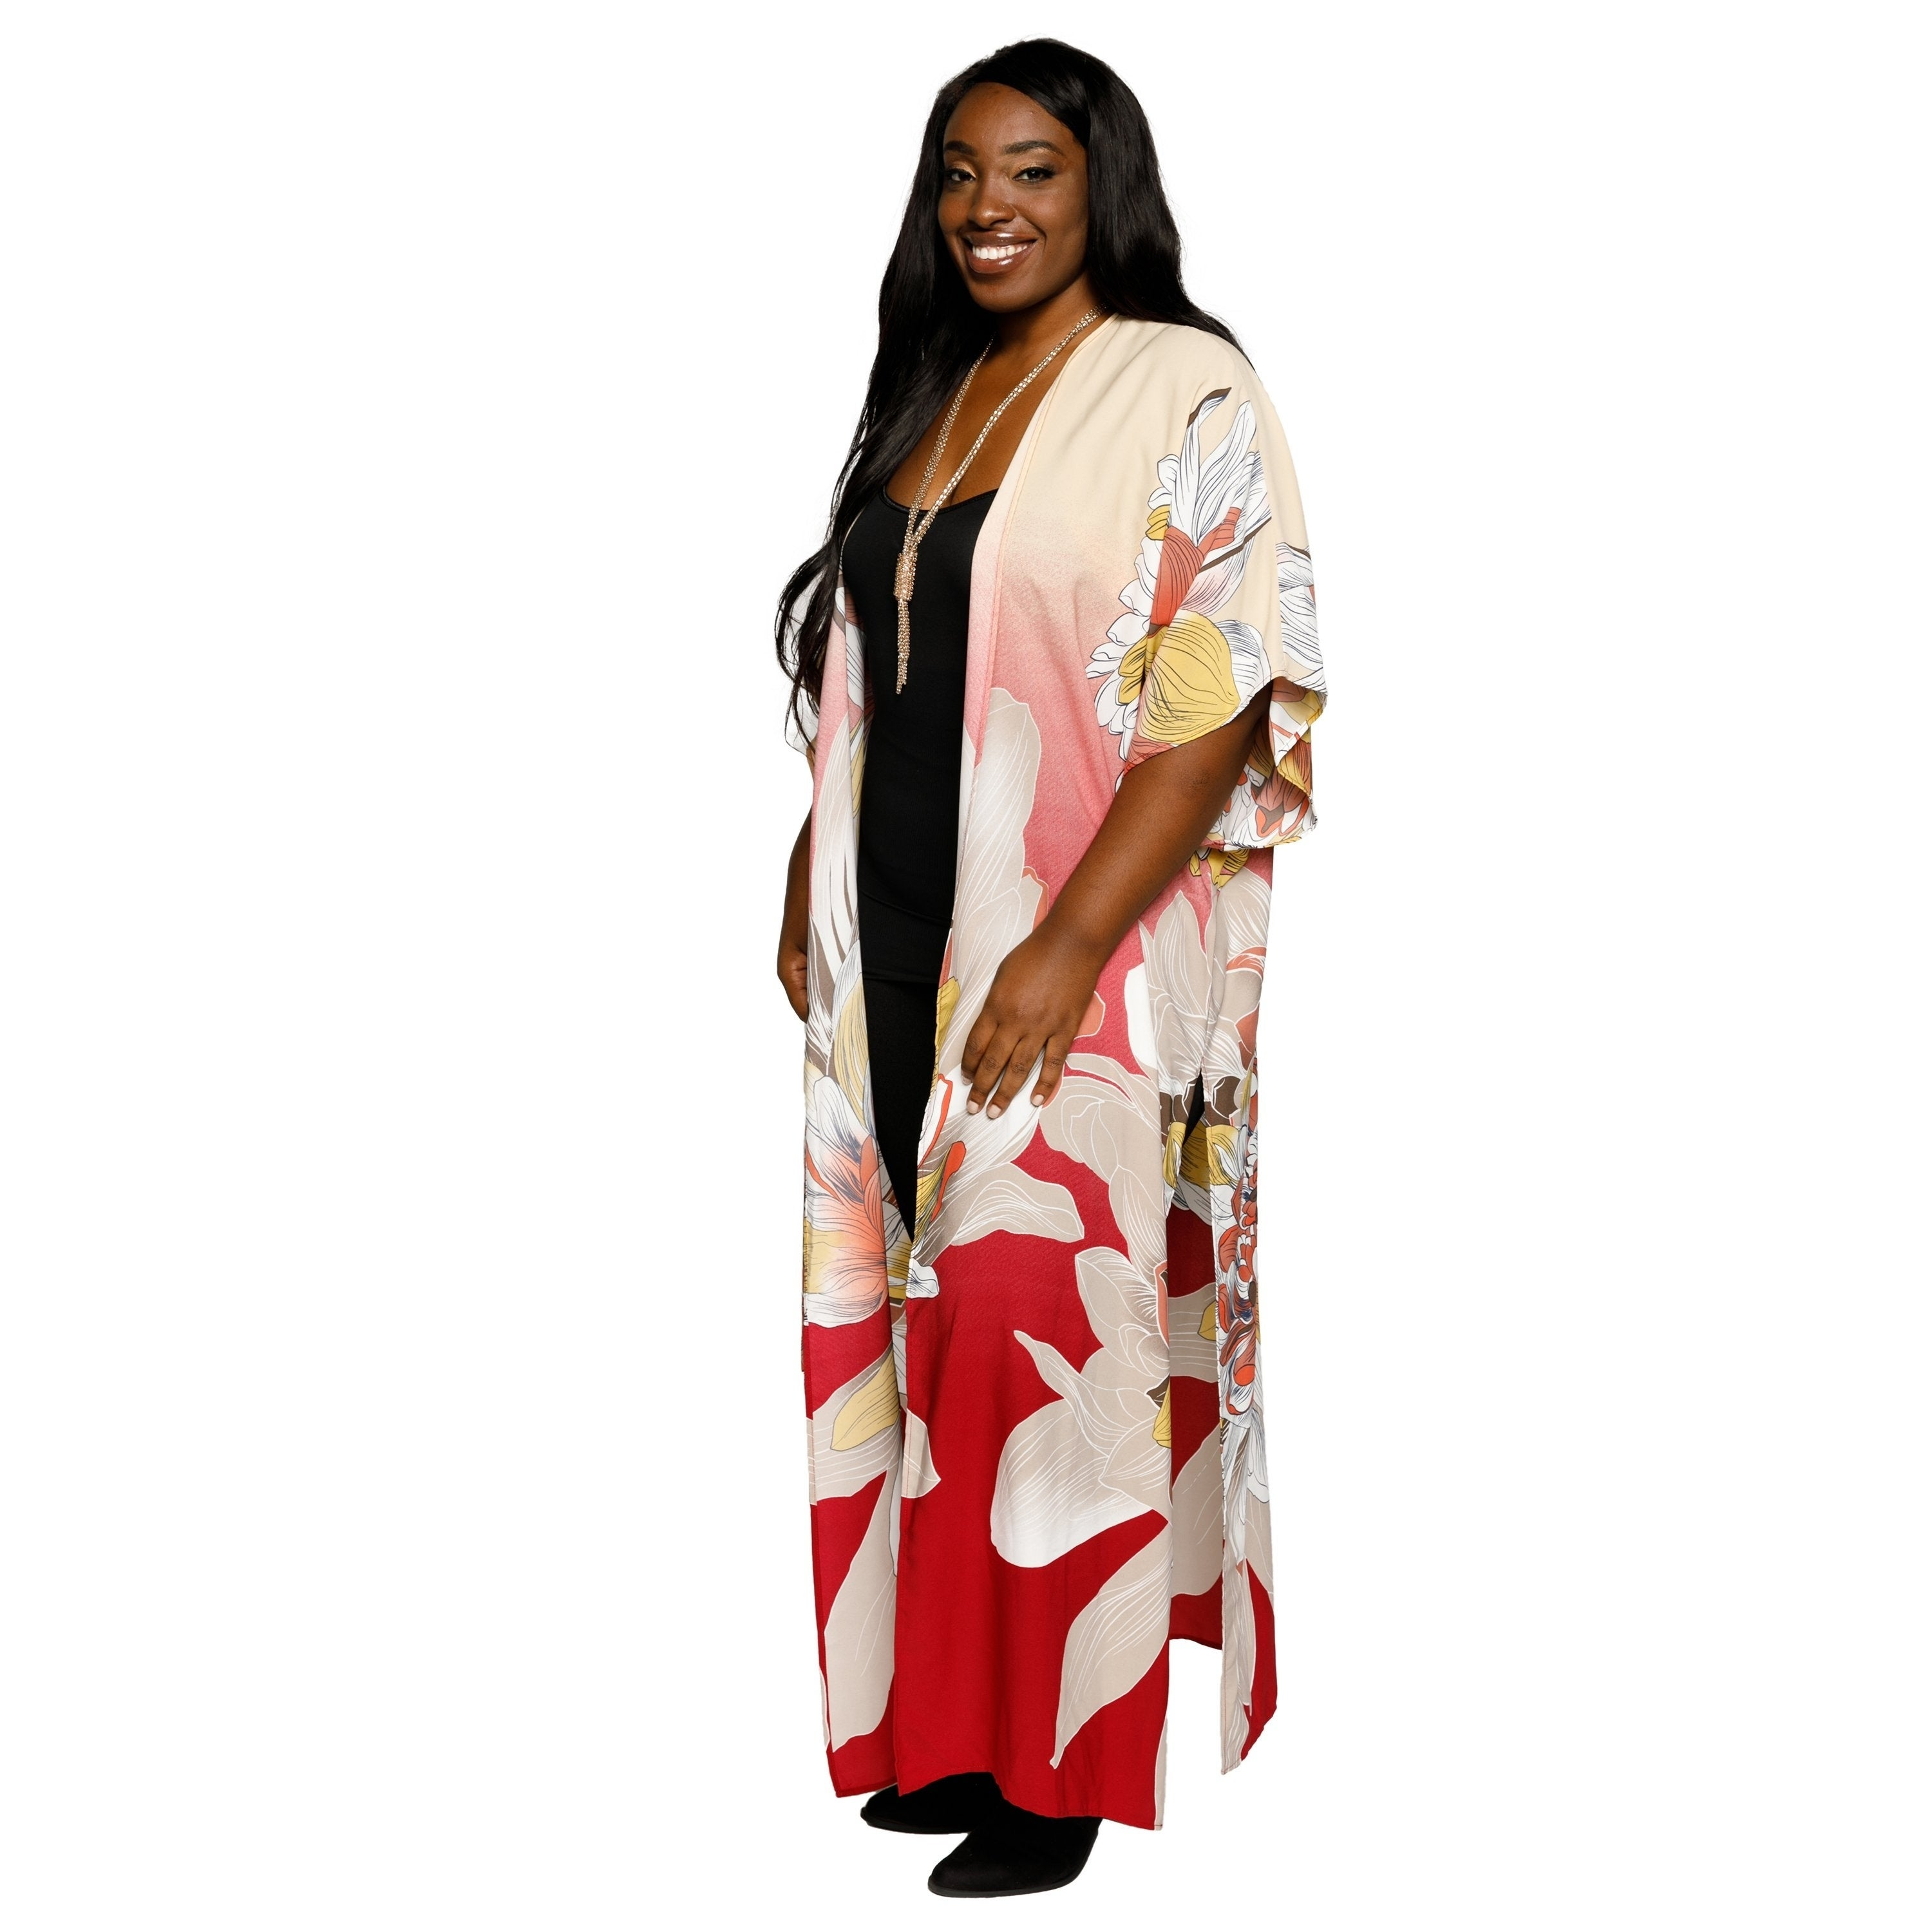 c33eff1d2 Shop Xehar Womens Plus Size Casual Fashion Long Floral Kimono Cardigan -  Free Shipping On Orders Over $45 - Overstock - 18150620